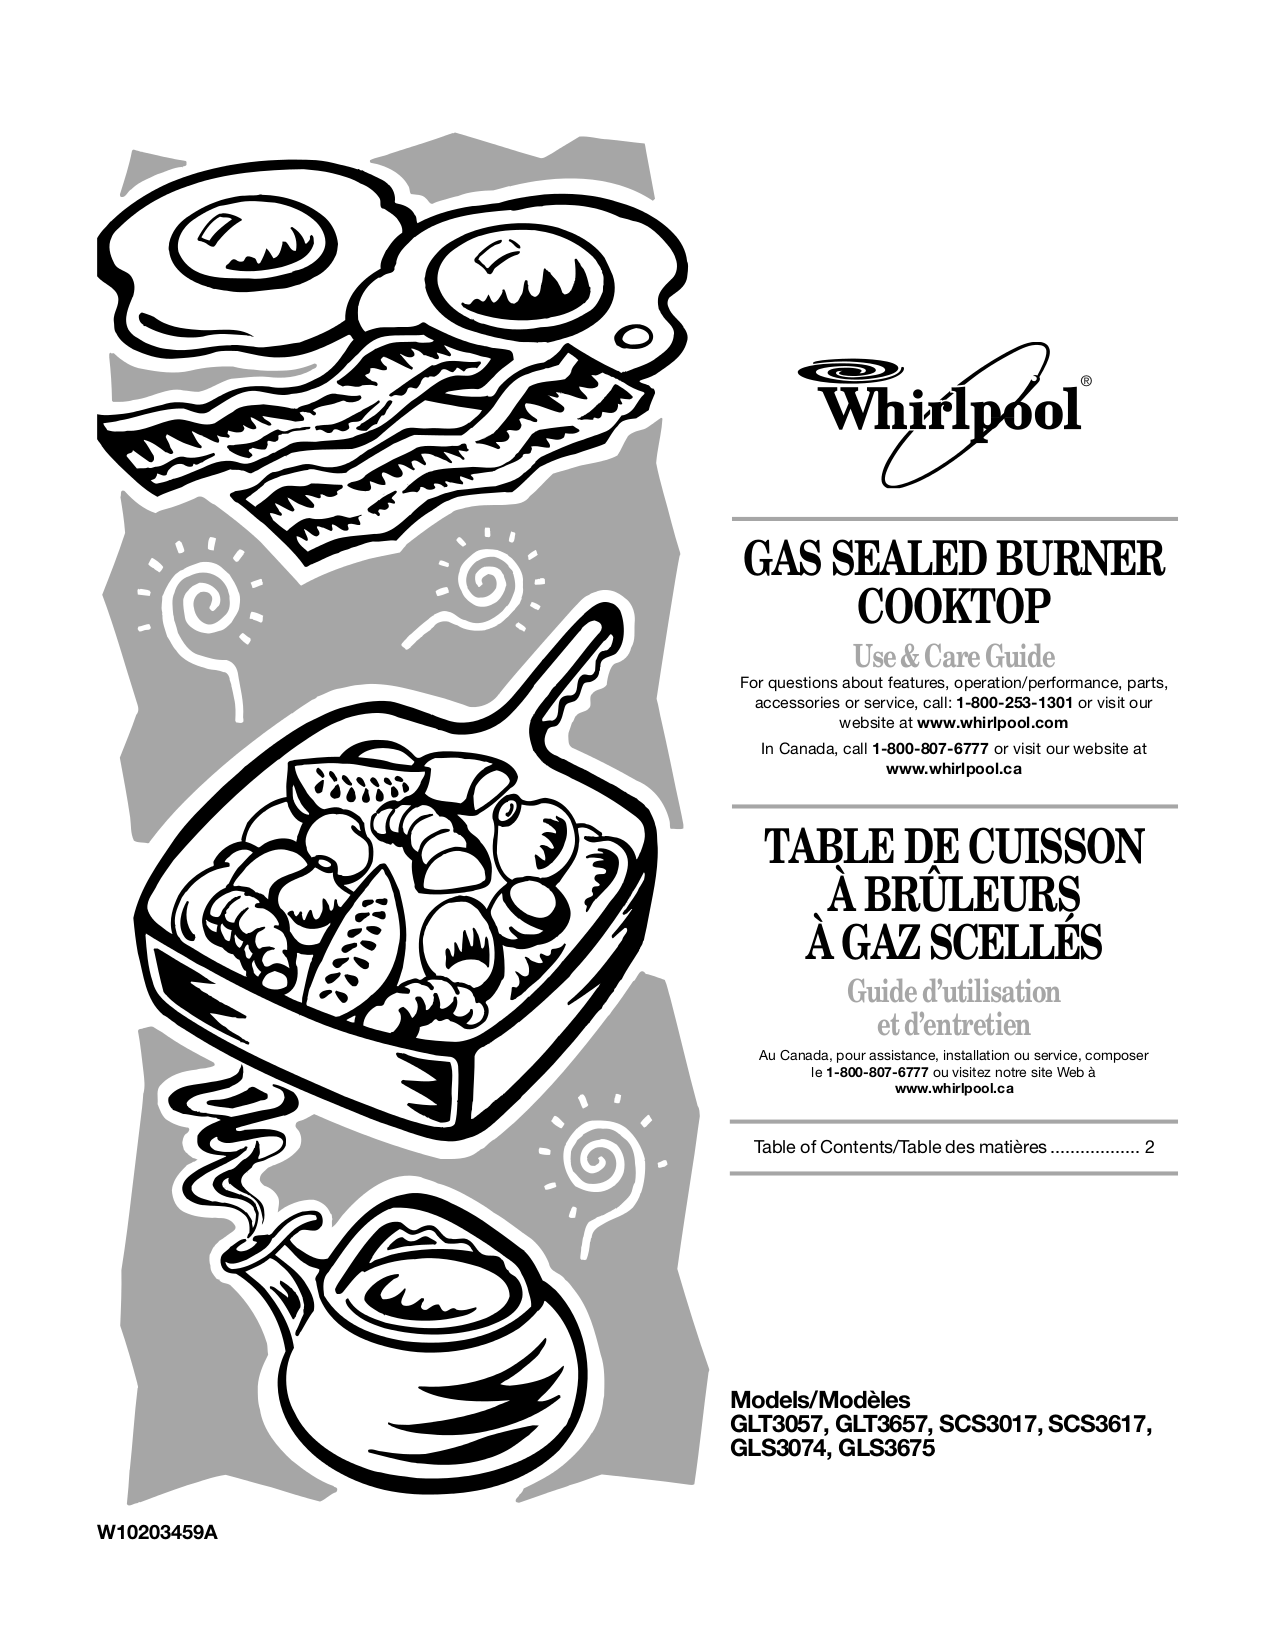 Owners Manual For Whirlpool Stove